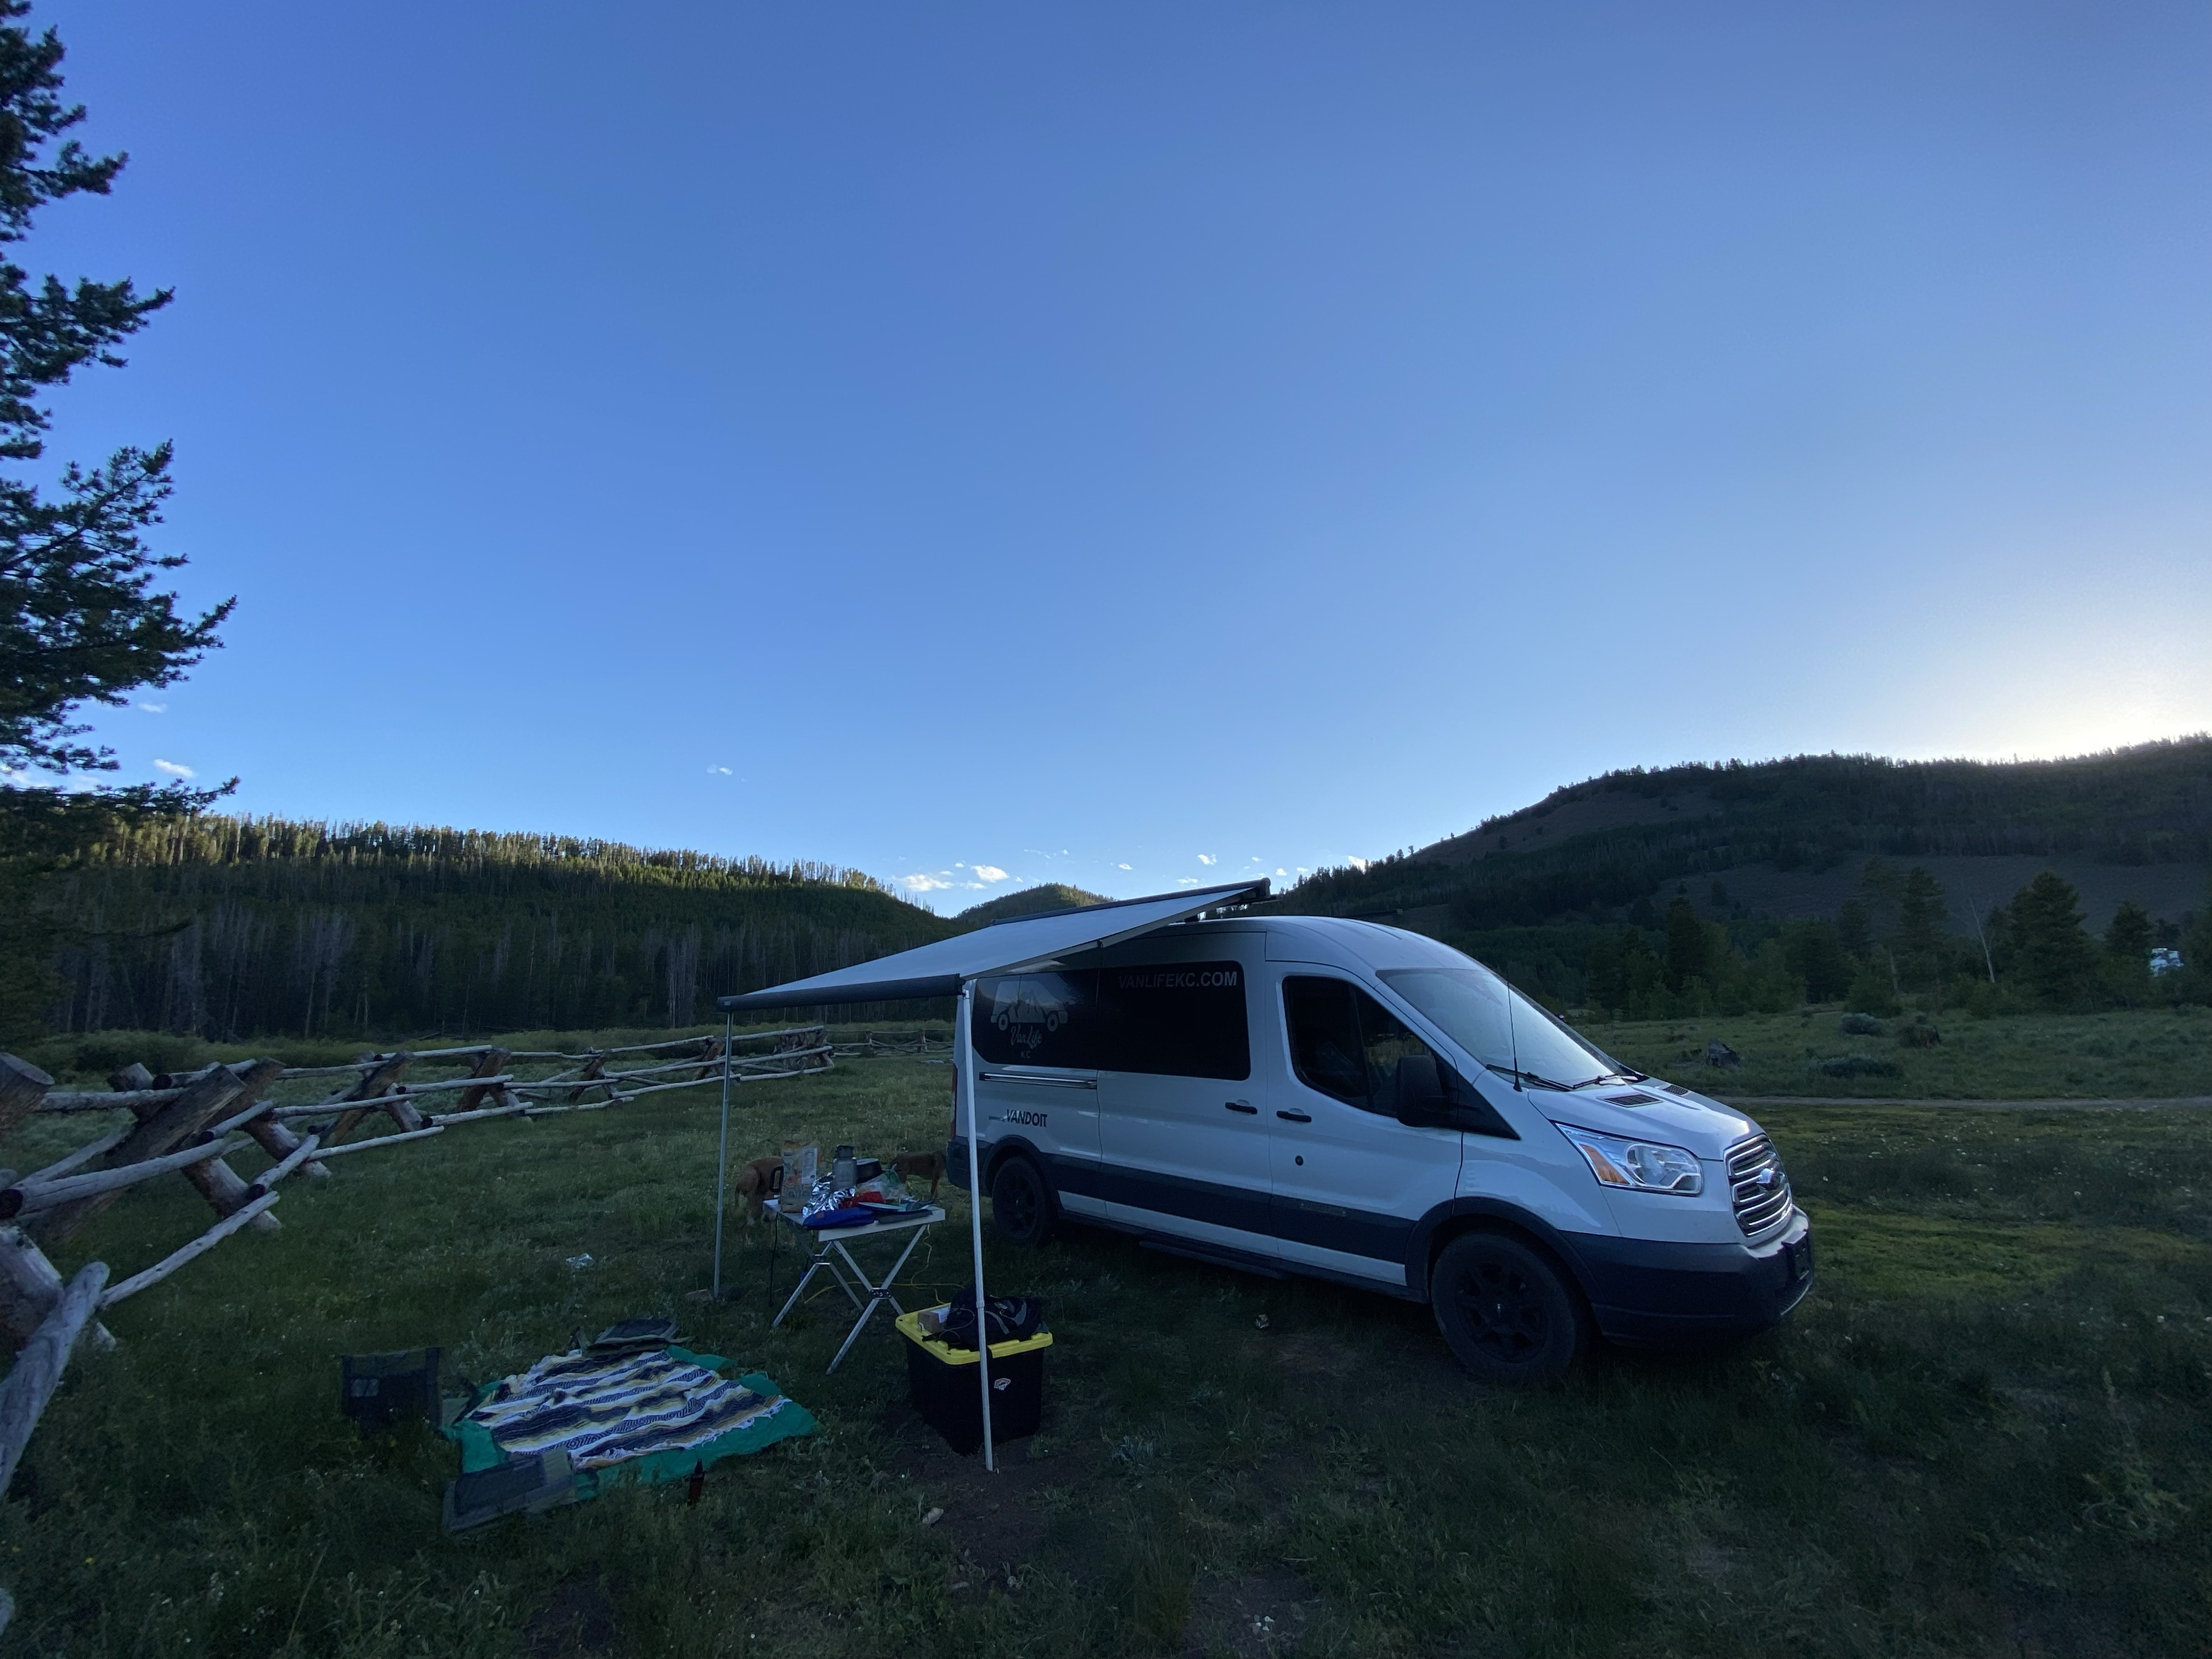 Vandium is a lot of fun. This was from a recent trip to Colorado with the awning out, and the kitchen set up to cook. Are you ready to choose your own adventure?. Ford Custom Transit VanDOit Adventure Van 2017